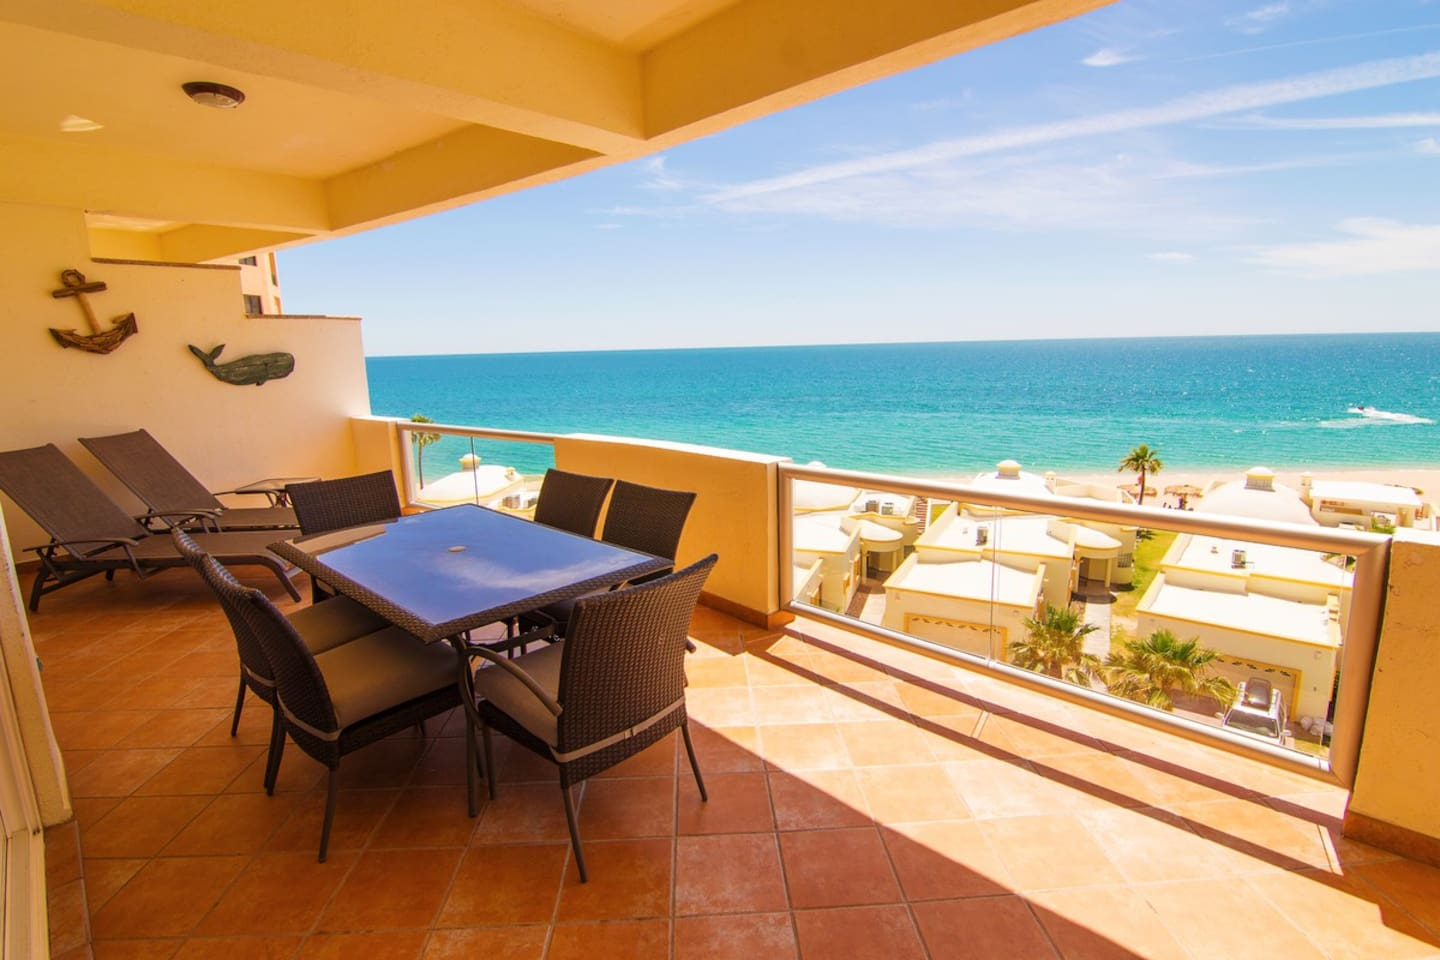 Enjoy the patio set with 2 oversized lounge chairs.  This unit was chosen with the perfect sunset view in mind.